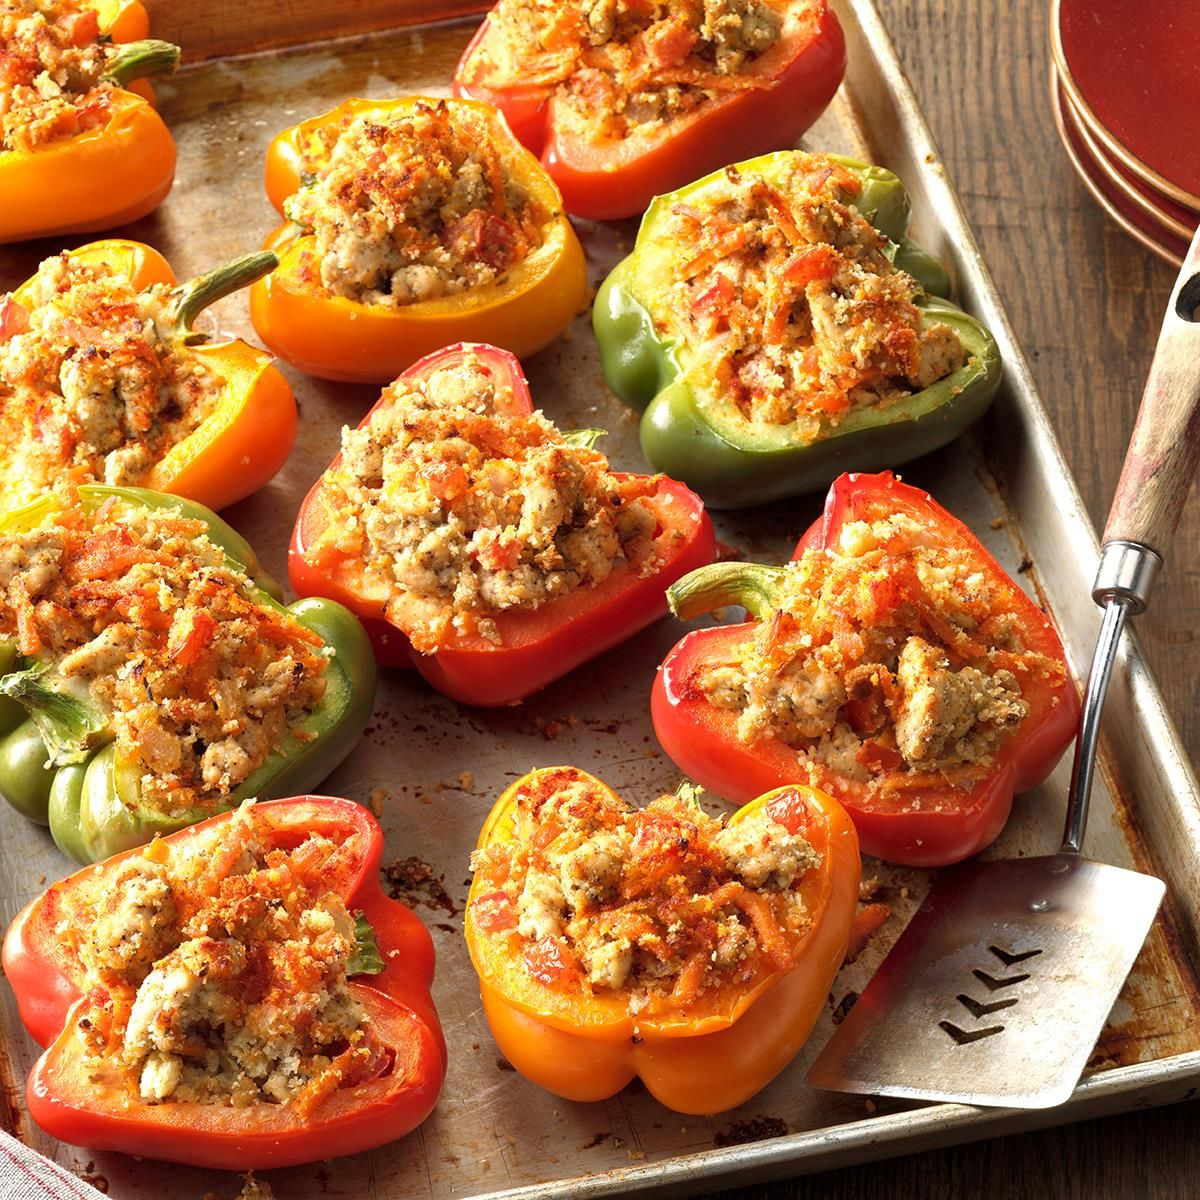 Turkey Stuffed Bell Peppers Recipe Stuffed Peppers Peppers Recipes Stuffed Peppers Turkey